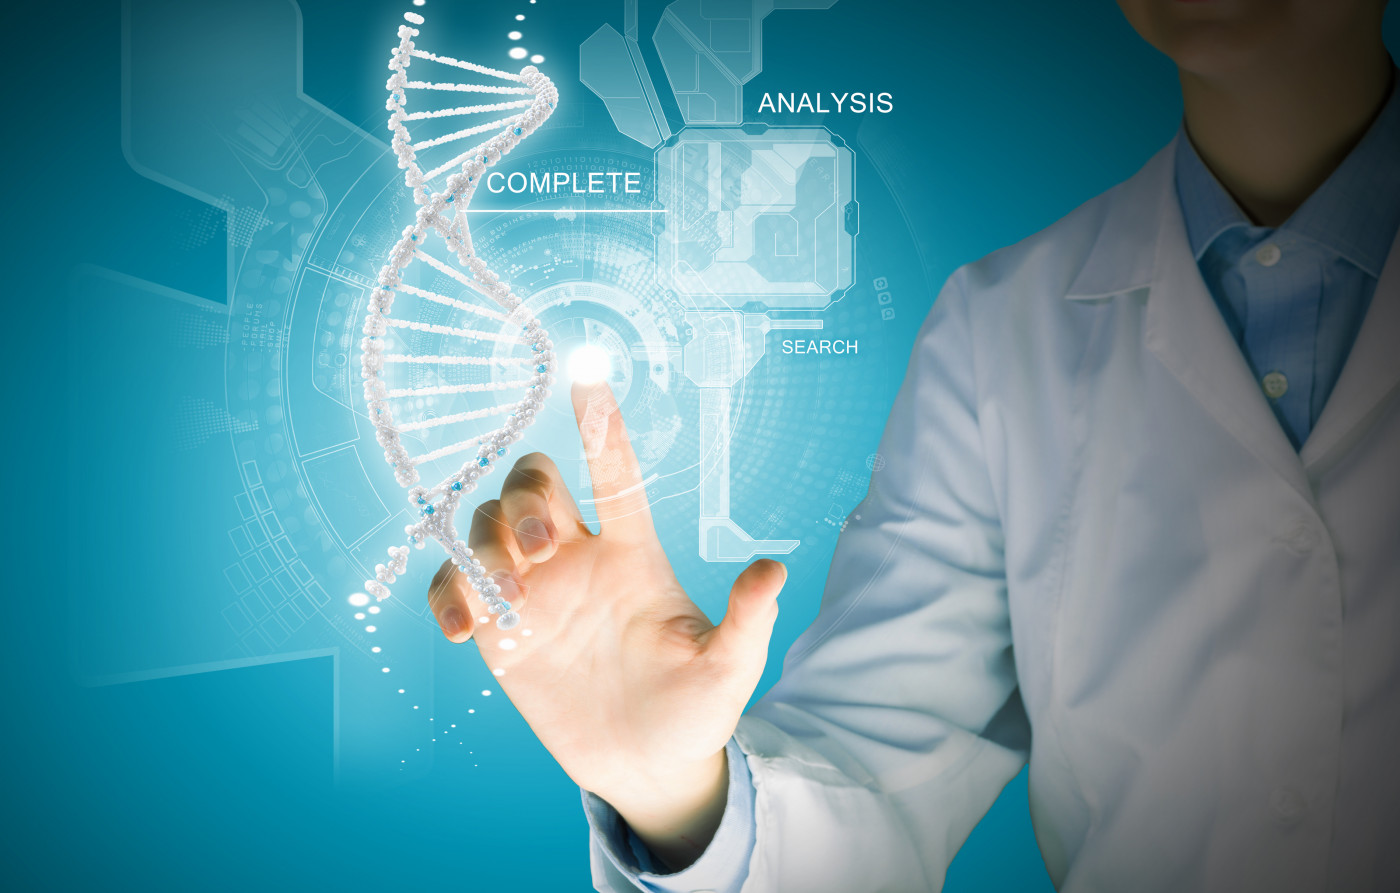 CF bone health | Cystic Fibrosis News Today | scientists studying patients' health